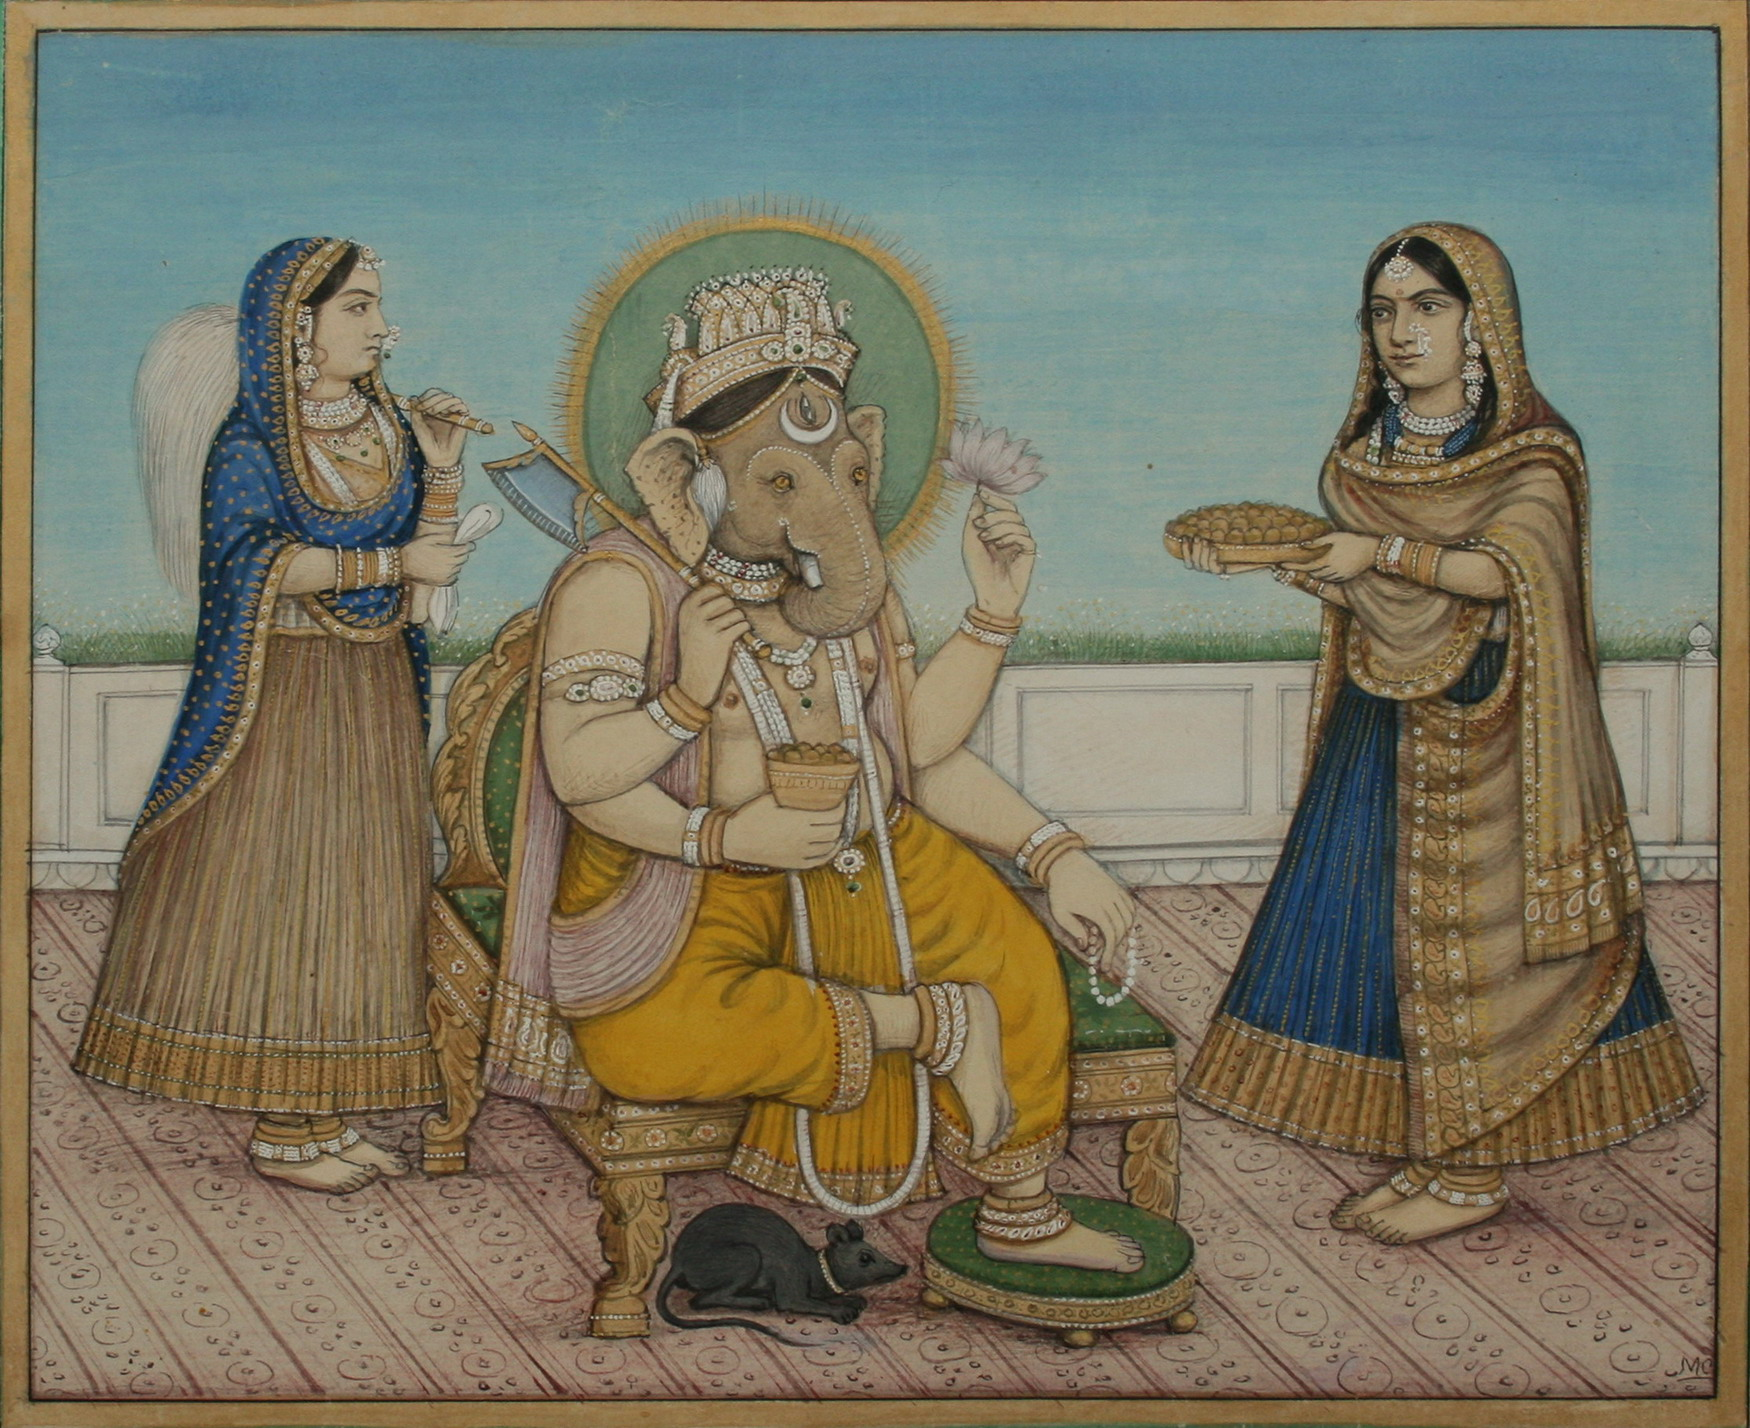 Ganesha attended by wives Riddhi and Siddhi - Delhi c1880's